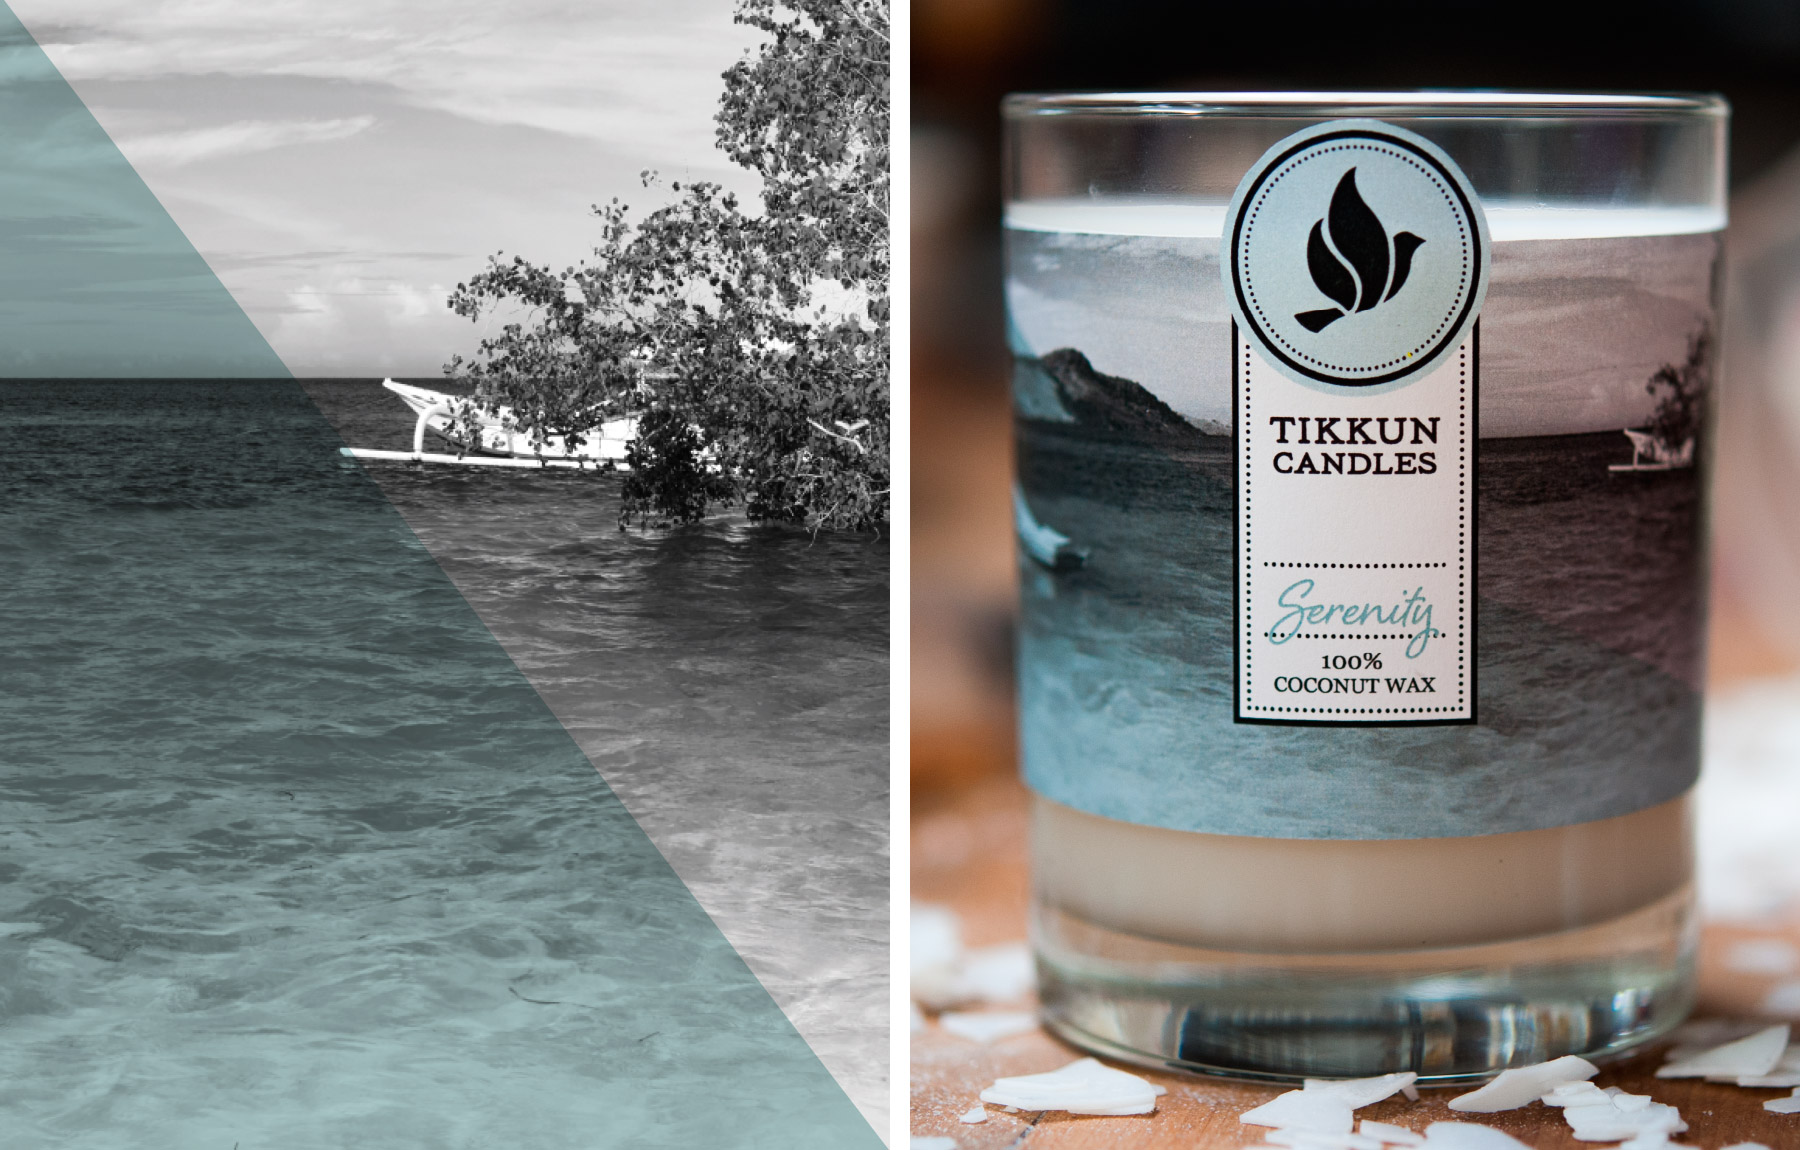 Serenity candle packaging design